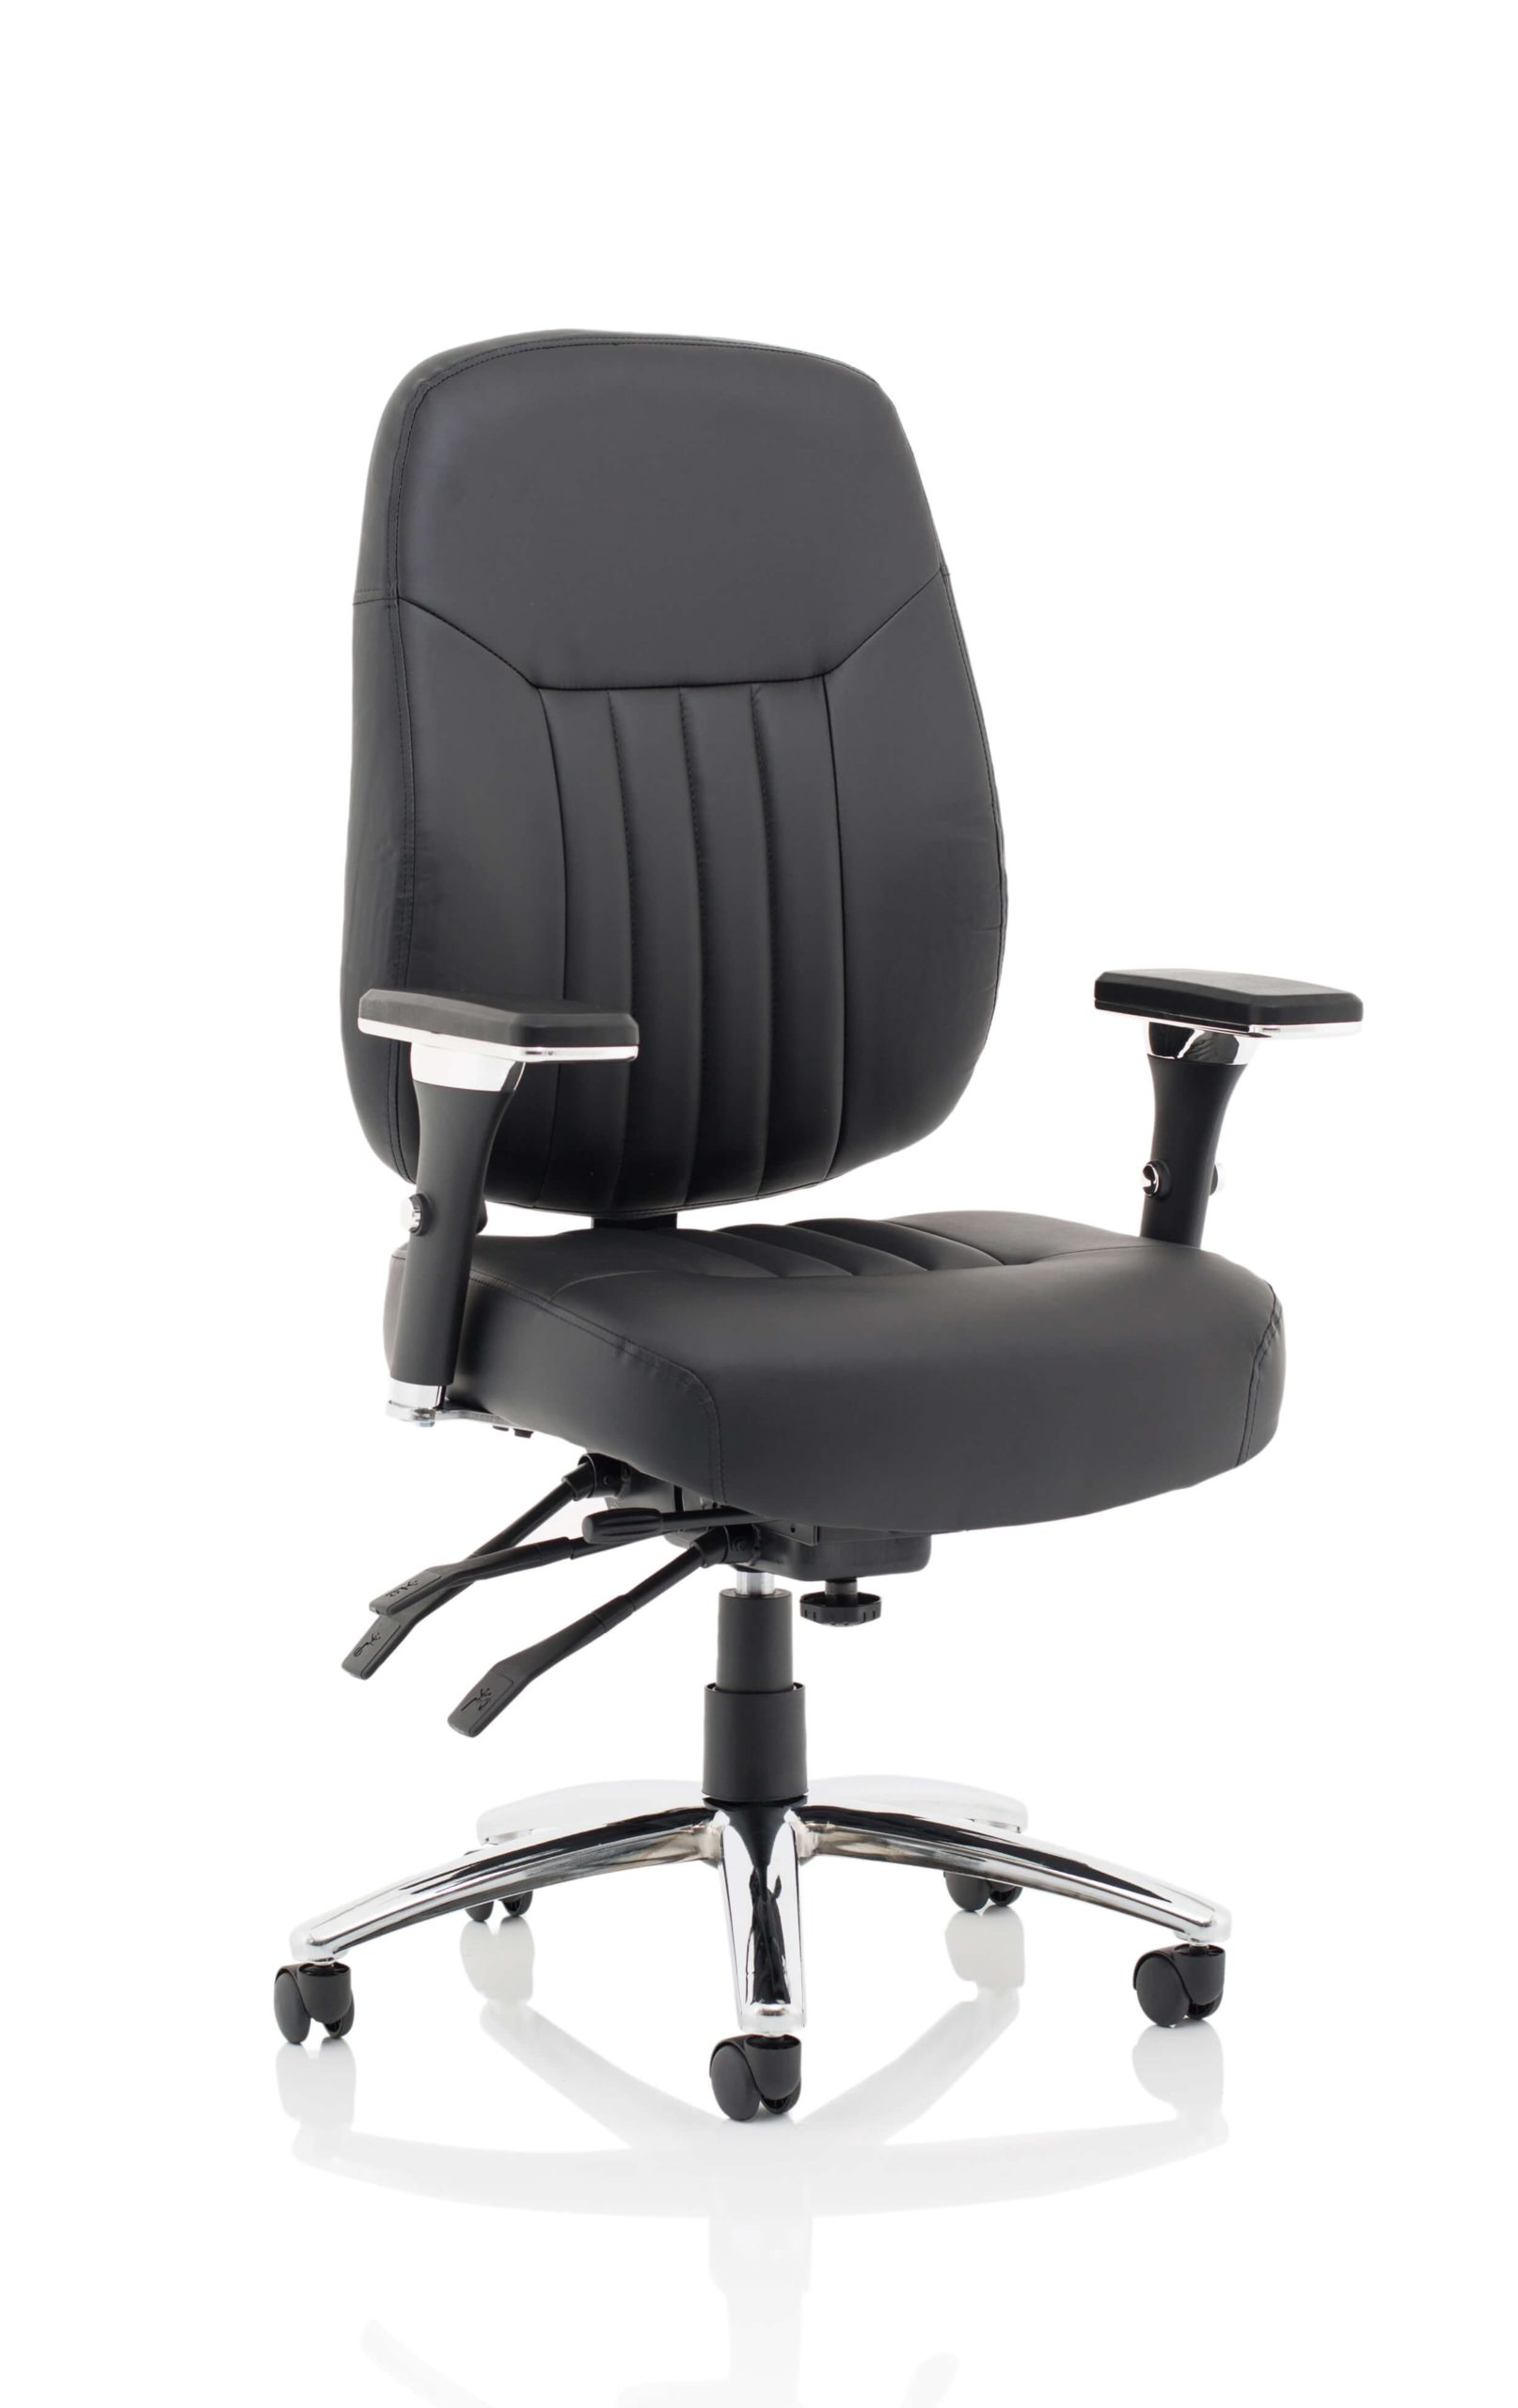 Barce Fabric Seat Swivel Adjustable Office Chair